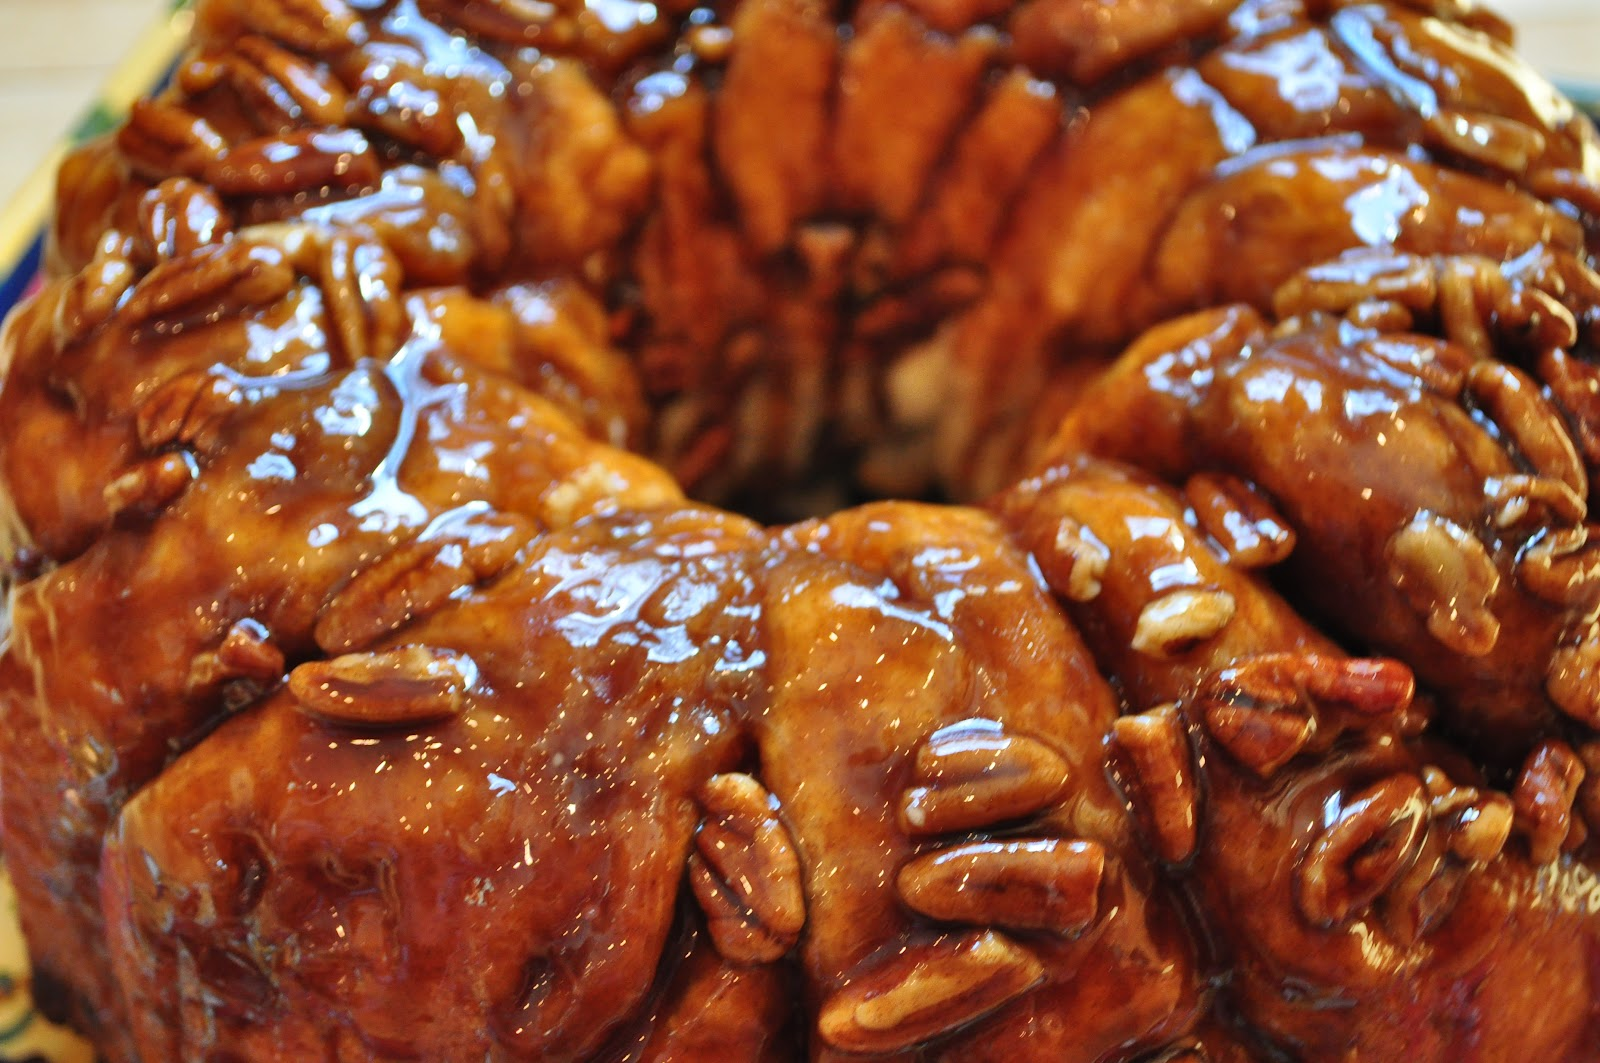 newlywed's kitchen: Cinnamon Sticky Buns